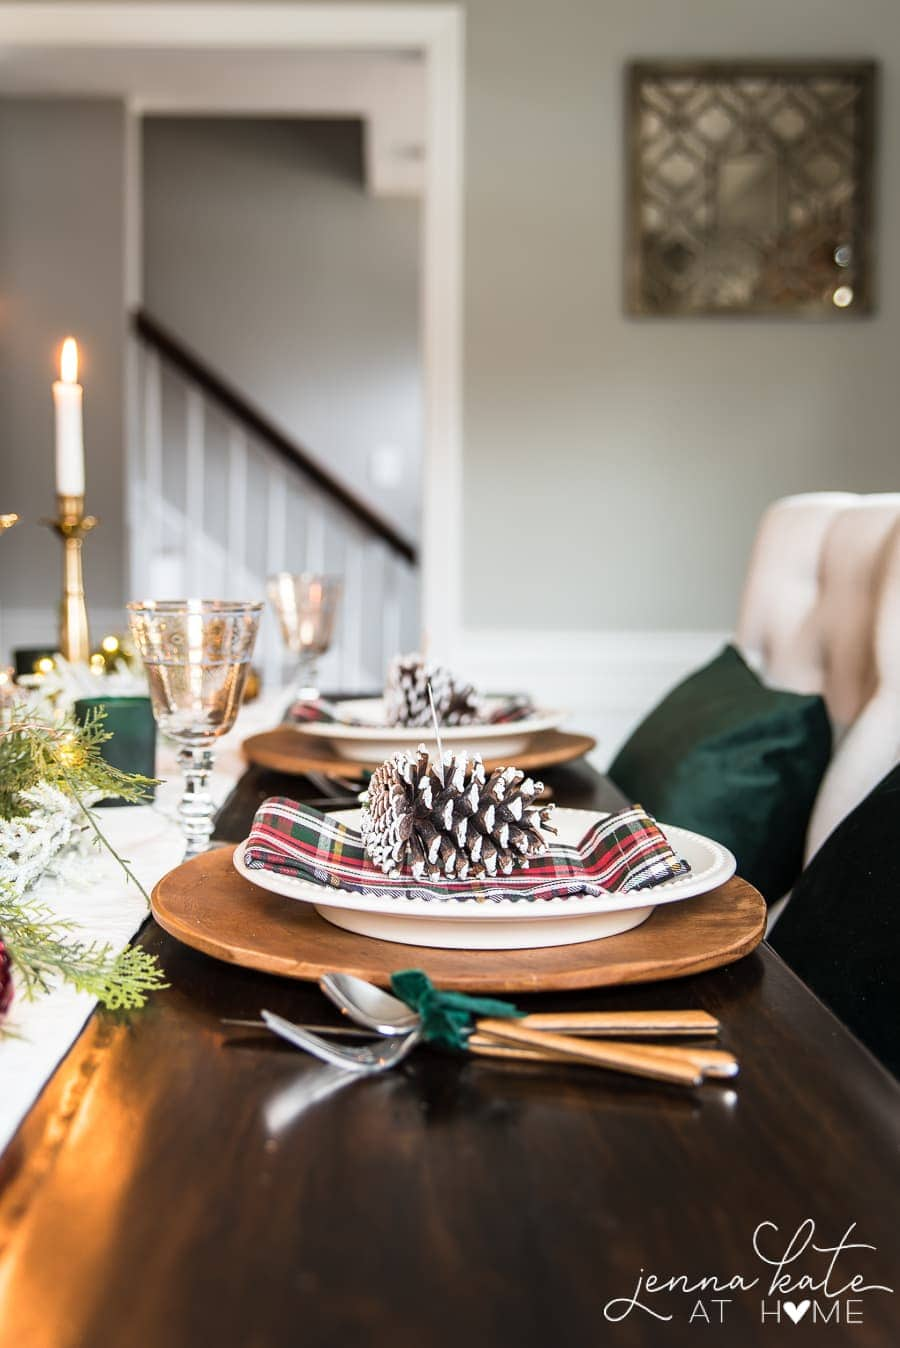 Pictures and ideas for traditional Christmas table setting decor